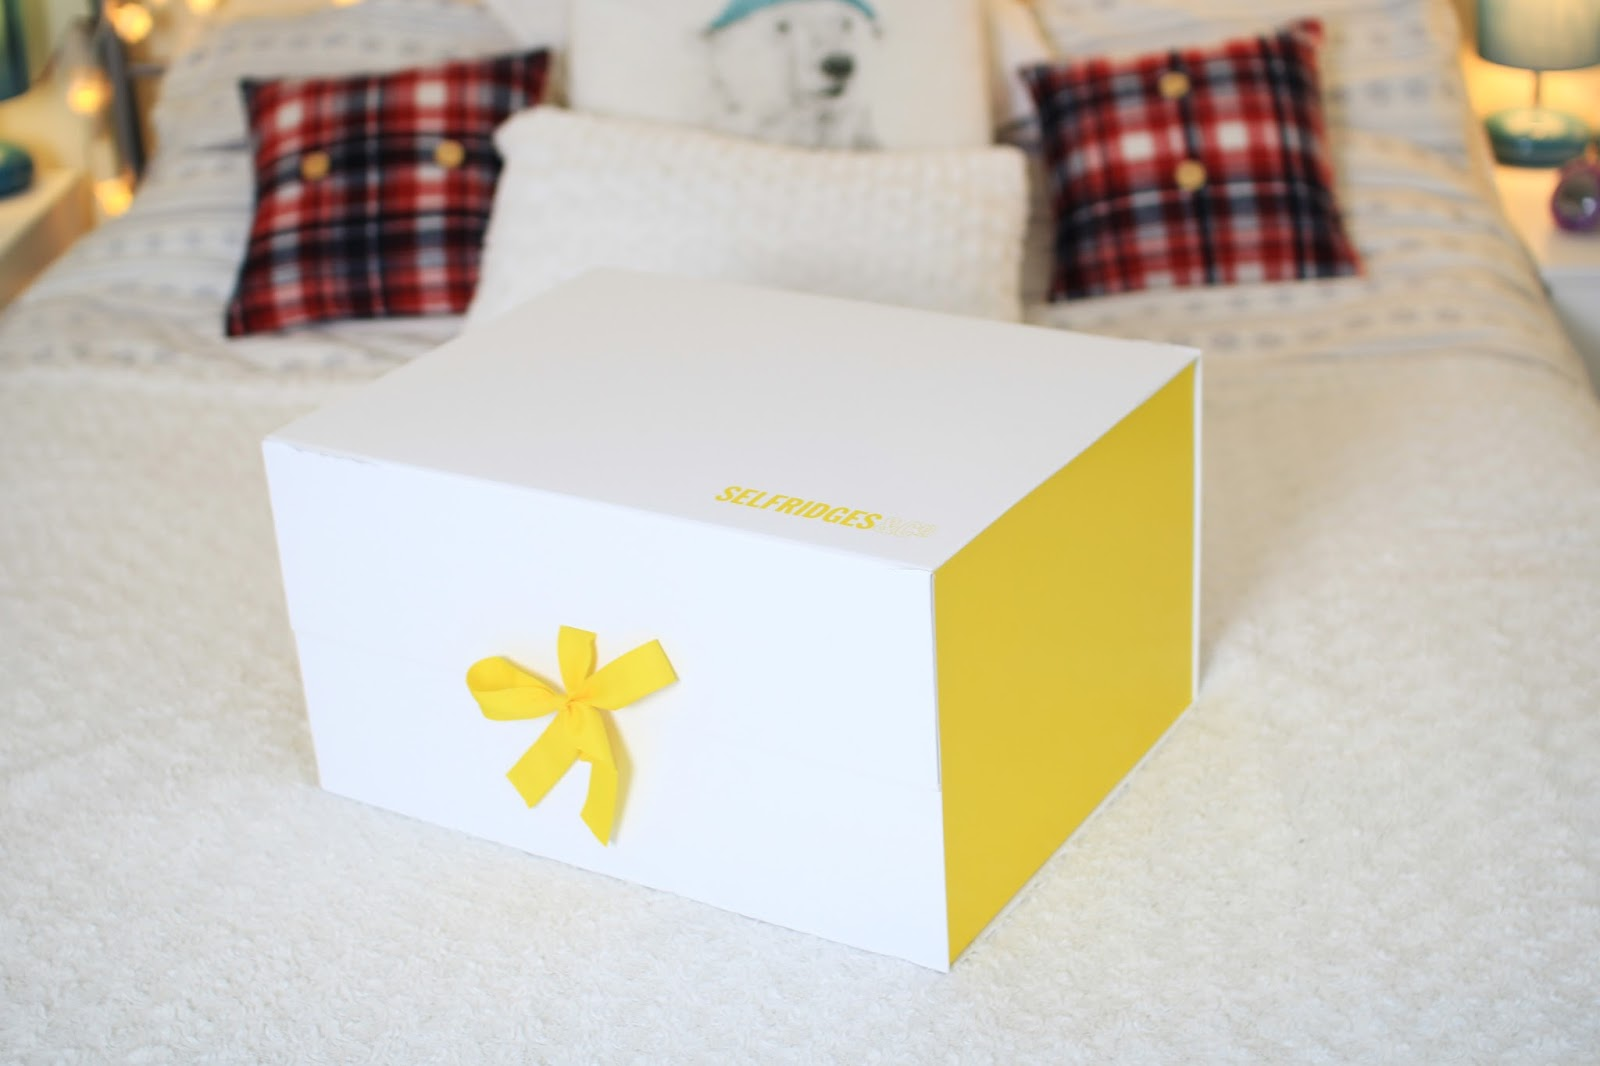 Personalised Christmas Gifts from Selfridges